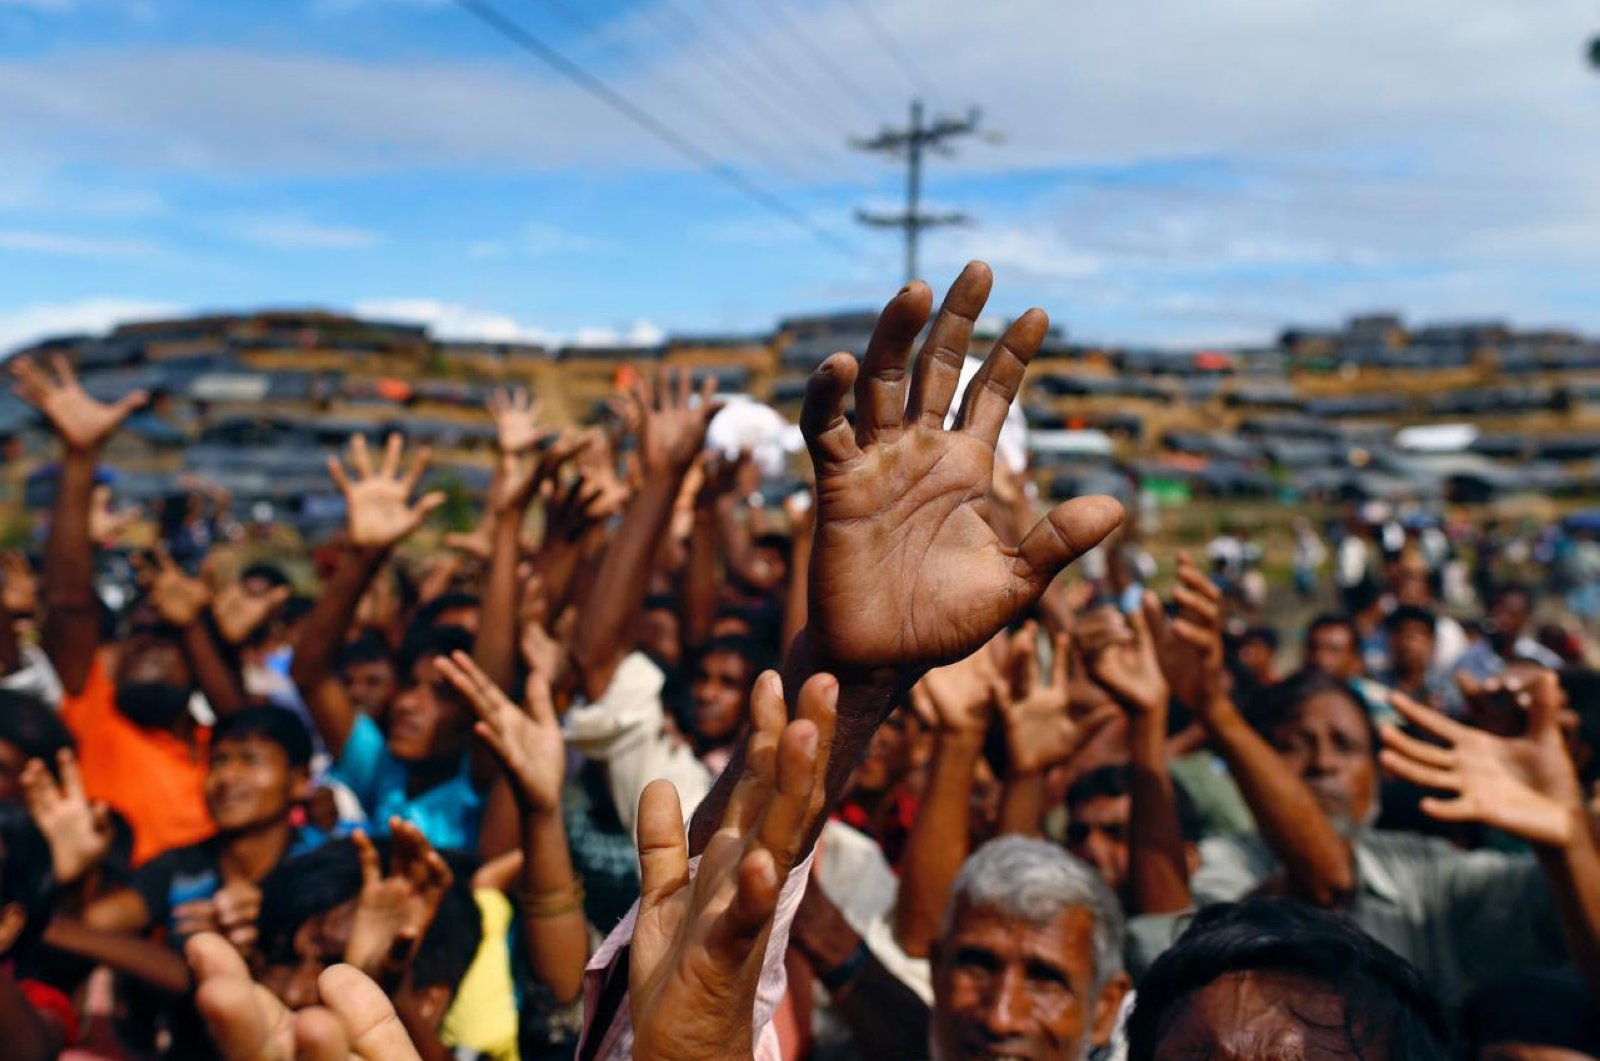 The roundups in India and fear of deportation to Myanmar have driven even more of the stateless Muslims into Bangladesh, where 1 million Rohingya live in giant refugee camps in the country's southeast. (Sabah File Photo)